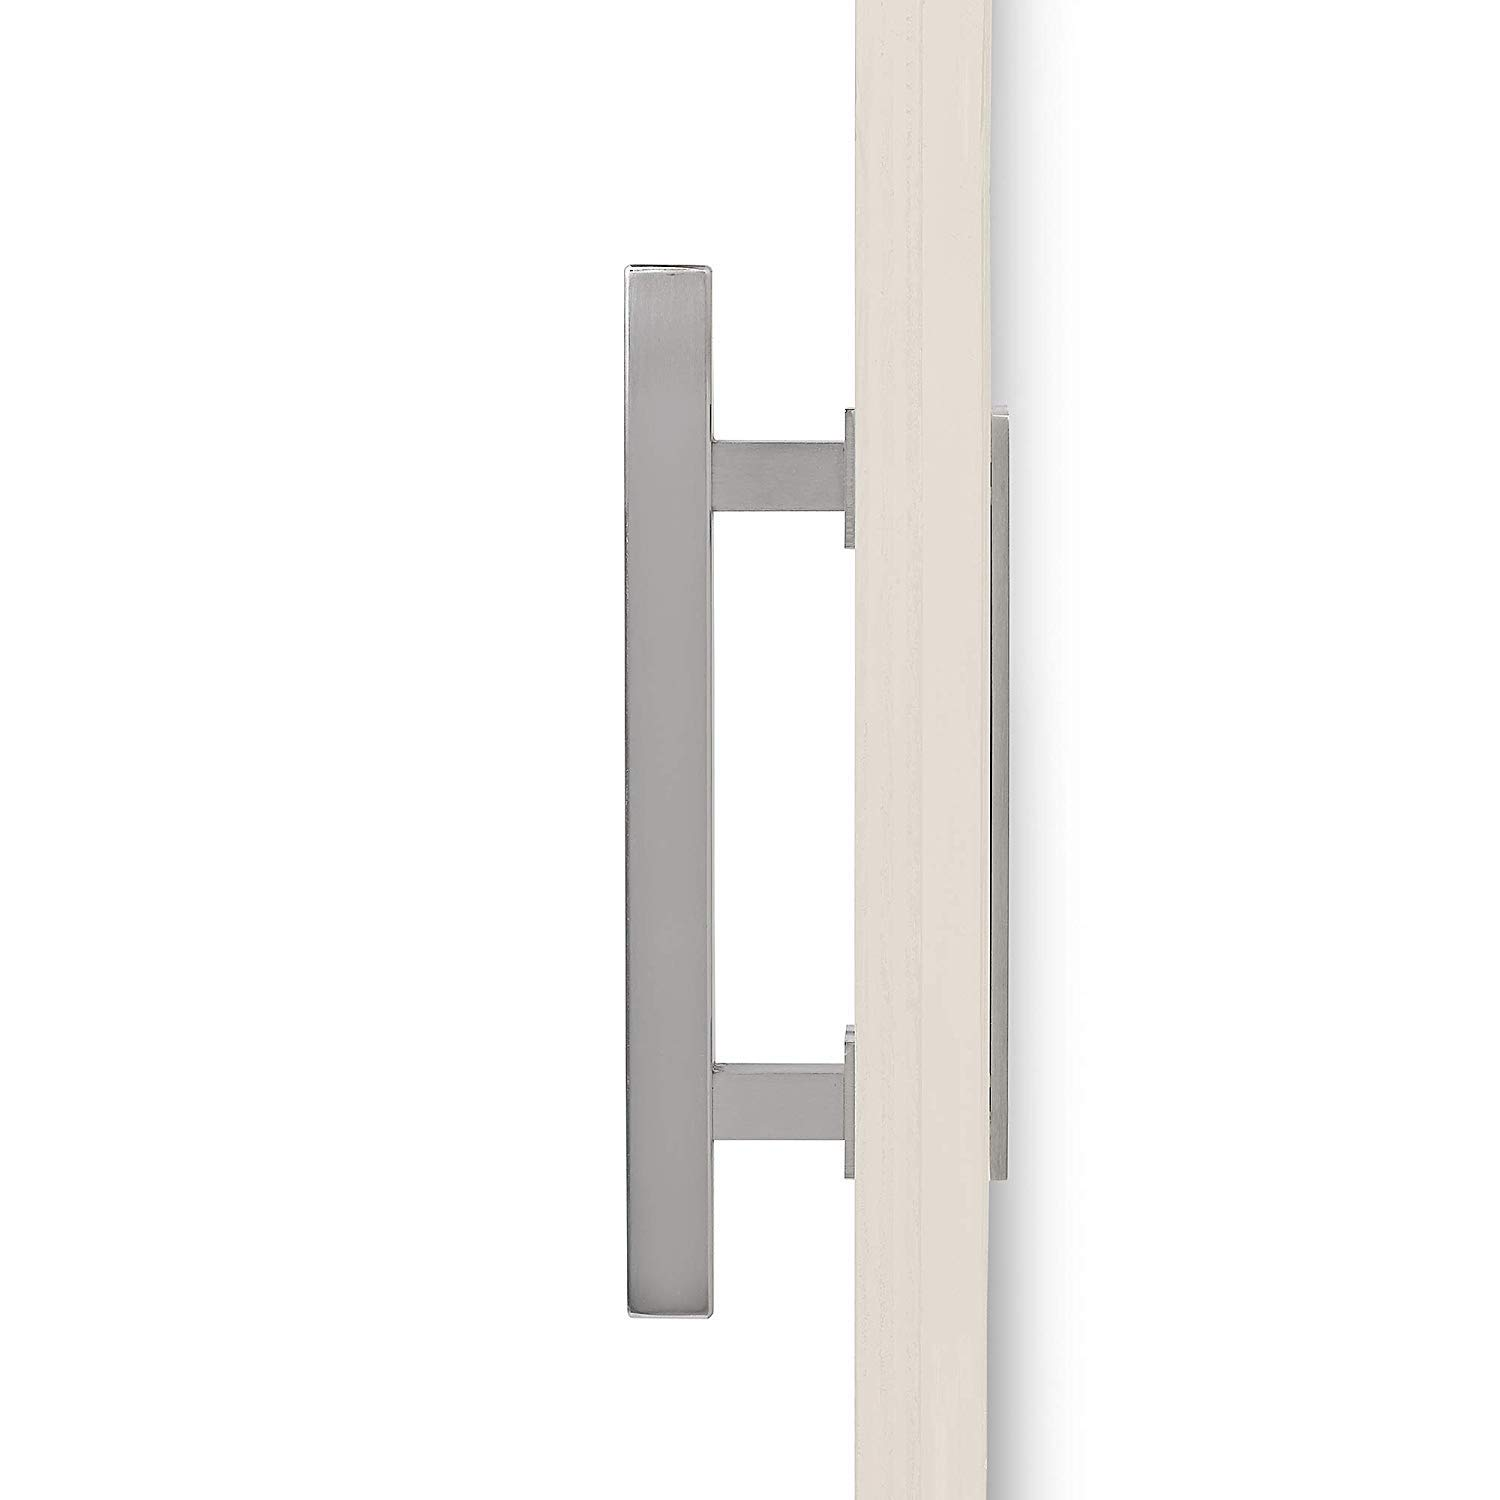 MJC /& Company 12 Round Sliding Barn Door Handle Pull with Flush-Mount Plate /& Cabin Hook Lock /¥ Heavy-Duty Modern Stainless Barn Door Hardware Set /¥ Strong Industrial Pull /& Privacy Latch